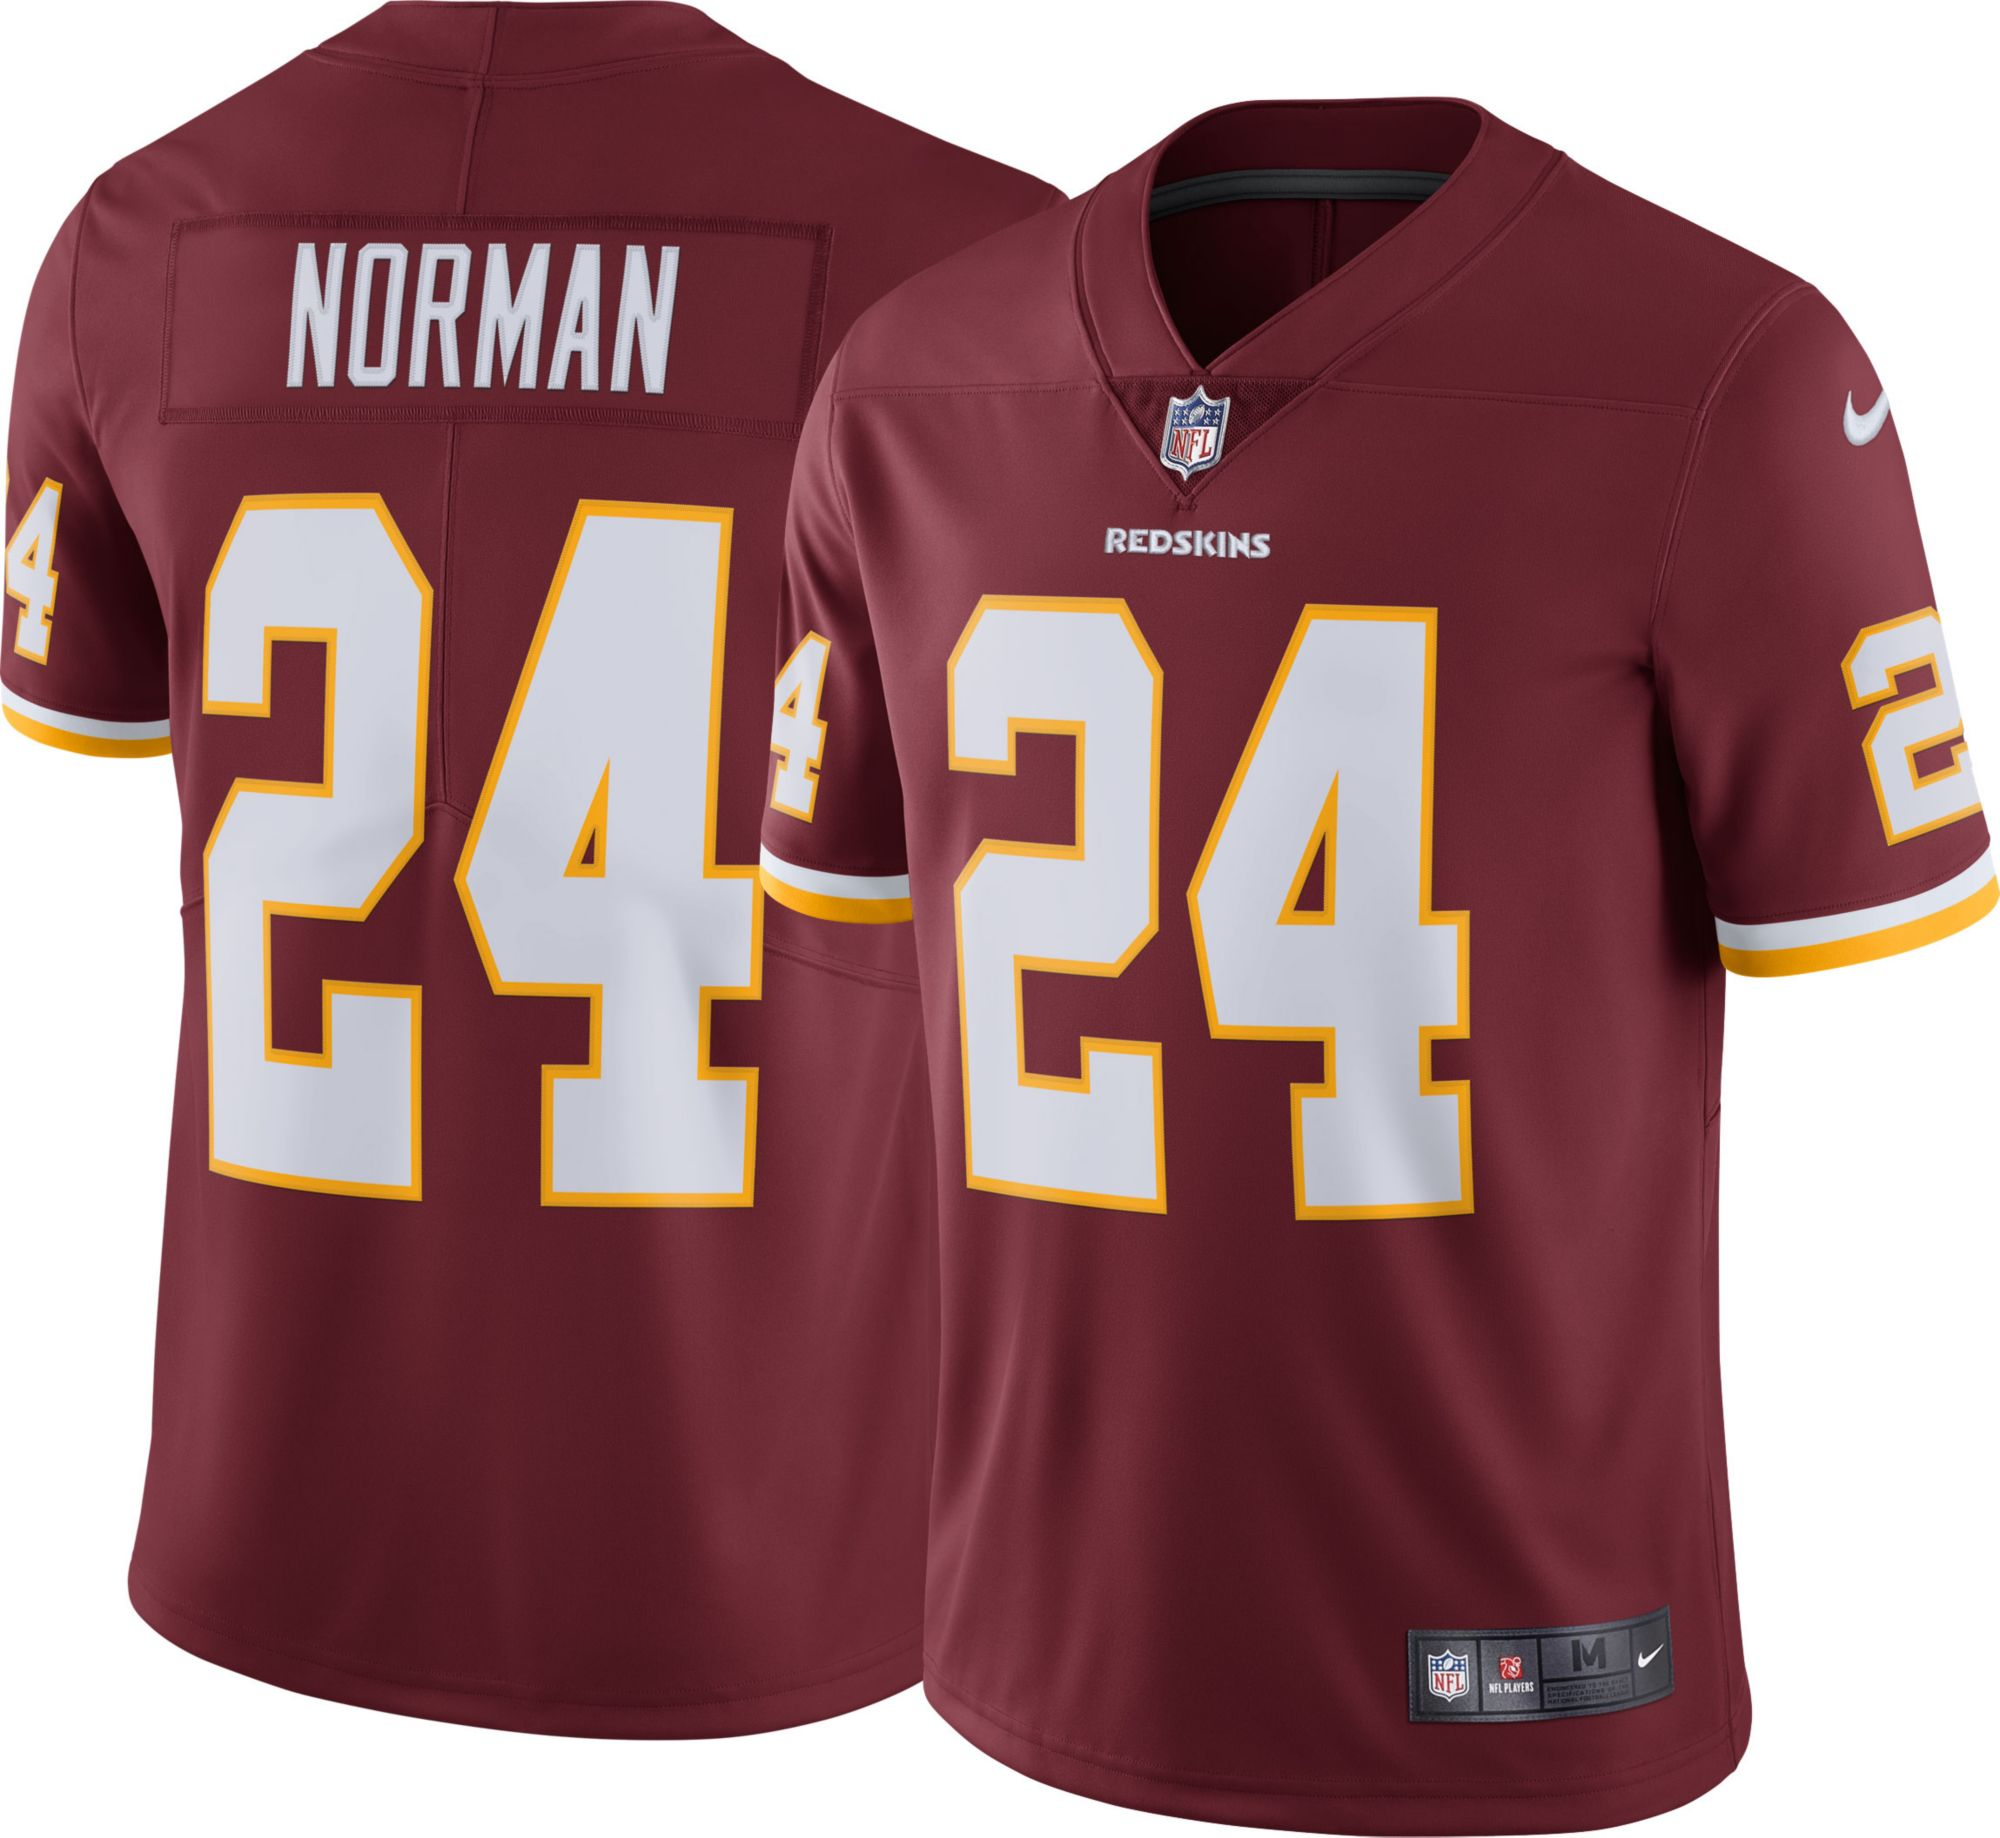 83a6a977741 ... 2018 salute to service jersey camo 0e5e0 081ed  get nike mens home limited  jersey washington redskins josh norman 24 1615c 48efb